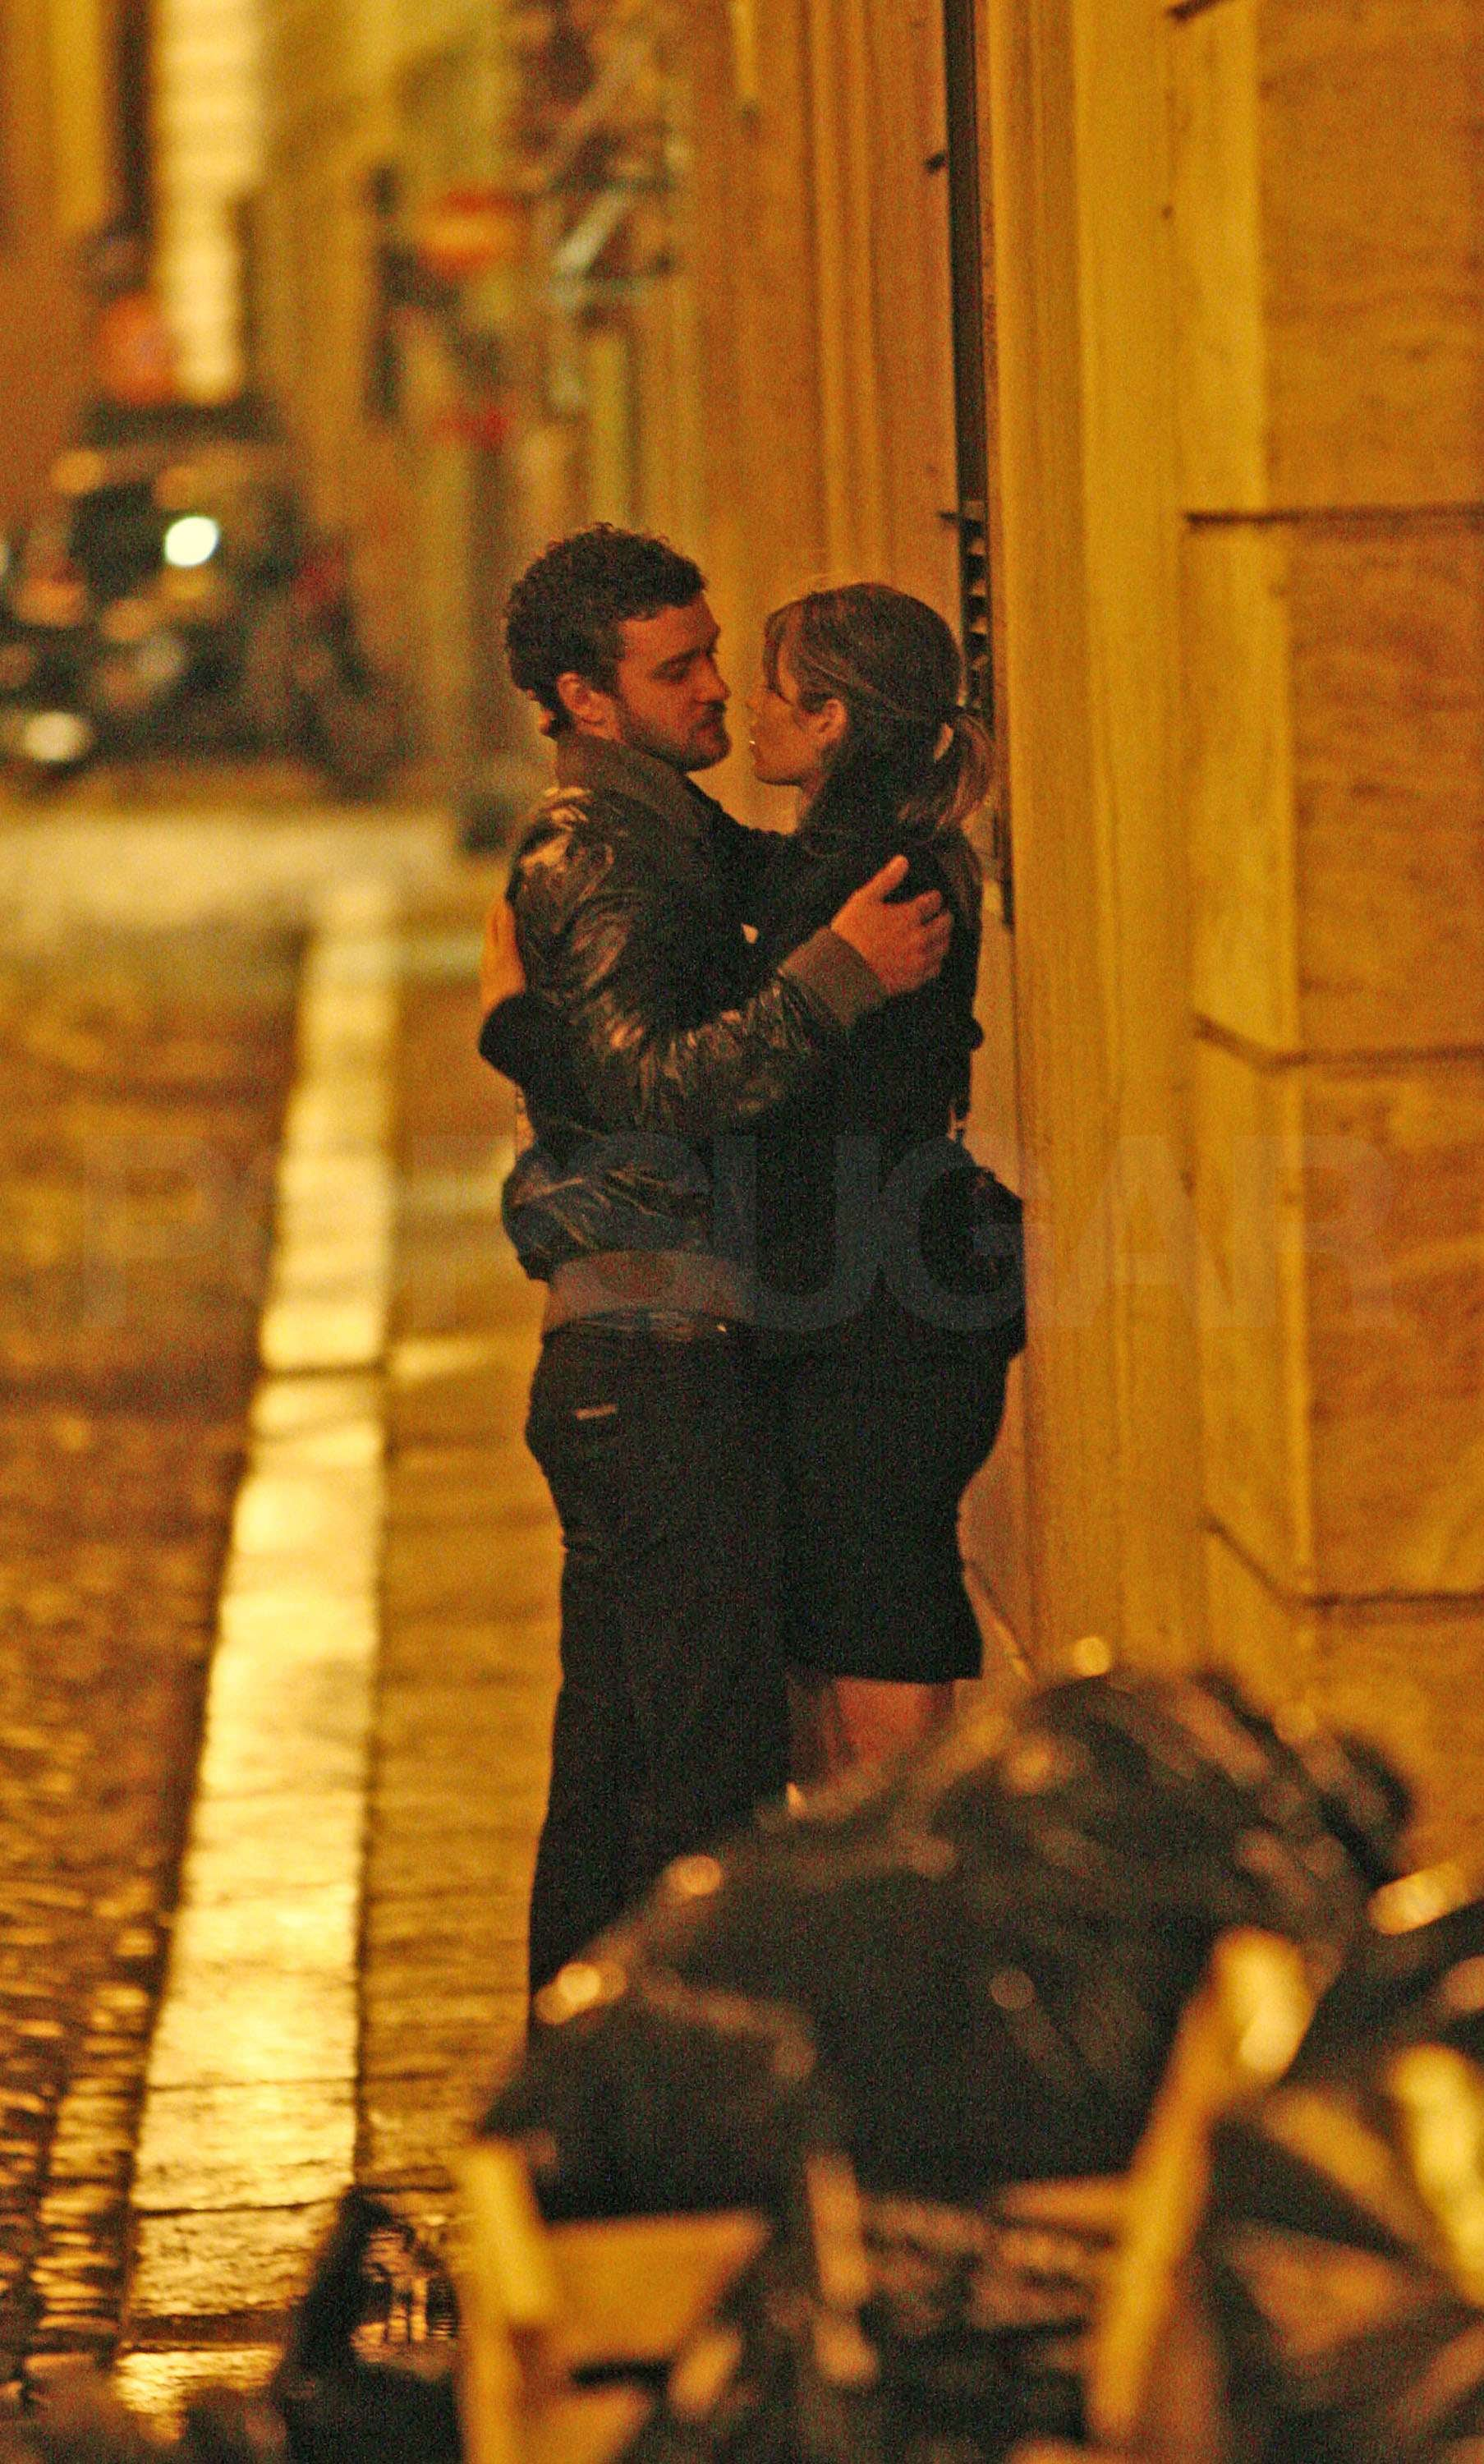 PopsugarCelebrityJustin TimberlakePhotos of Justin Timberlake and Jessica Biel Kissing in RomeJustin and Jessica Still Keeping It Romantic in RomeSeptember 29, 2008 by Celebrity2 SharesChat with us on Facebook Messenger. Learn what's trending across POPSUGAR.Justin Timberlake and Jessica Biel have been enjoying a vacation in Italy packed with photo ops and sightseeing, but they also found time to get romantic. Last week they shared a few kisses on the street and cozied up over dinner. On Friday the couple headed to a vintage jewelry shop for a few new items to add to Jess's collection. Now that Scarlett Johansson and Ryan Reynolds are married, we can't help but think back to last year and wonder if an even more special sparkler is on the way for these two members of that love square.To see more of Justin and Jessica all lovey dovey around Italy, just .Bauer-Griffin Online Join the conversationChat with us on Facebook Messenger. Learn what's trending across POPSUGAR.Justin TimberlakeJessica BielWant more?Ge - 웹